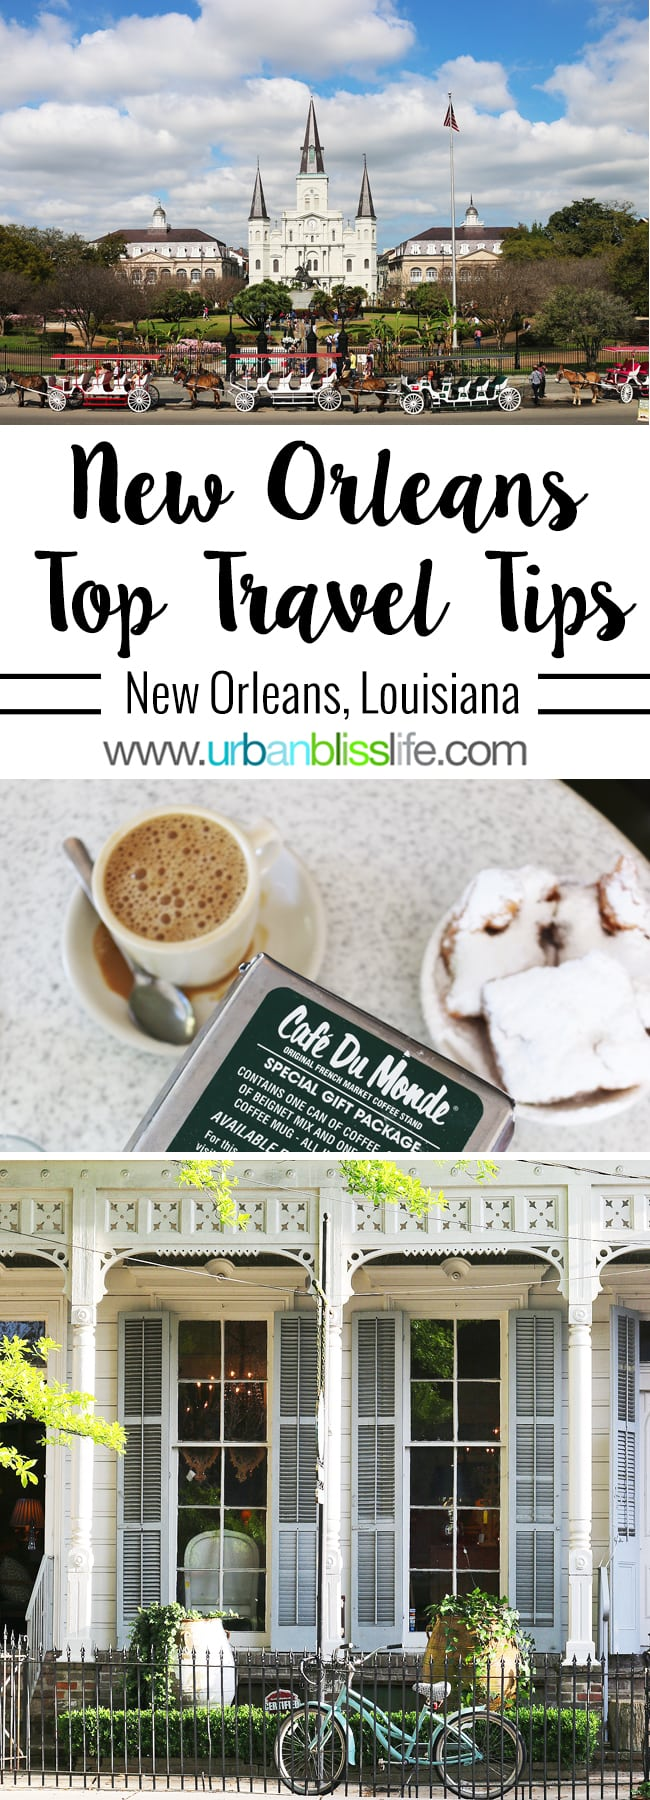 Getting Around New Orleans - Top Travel Tips on UrbanBlissLife.com